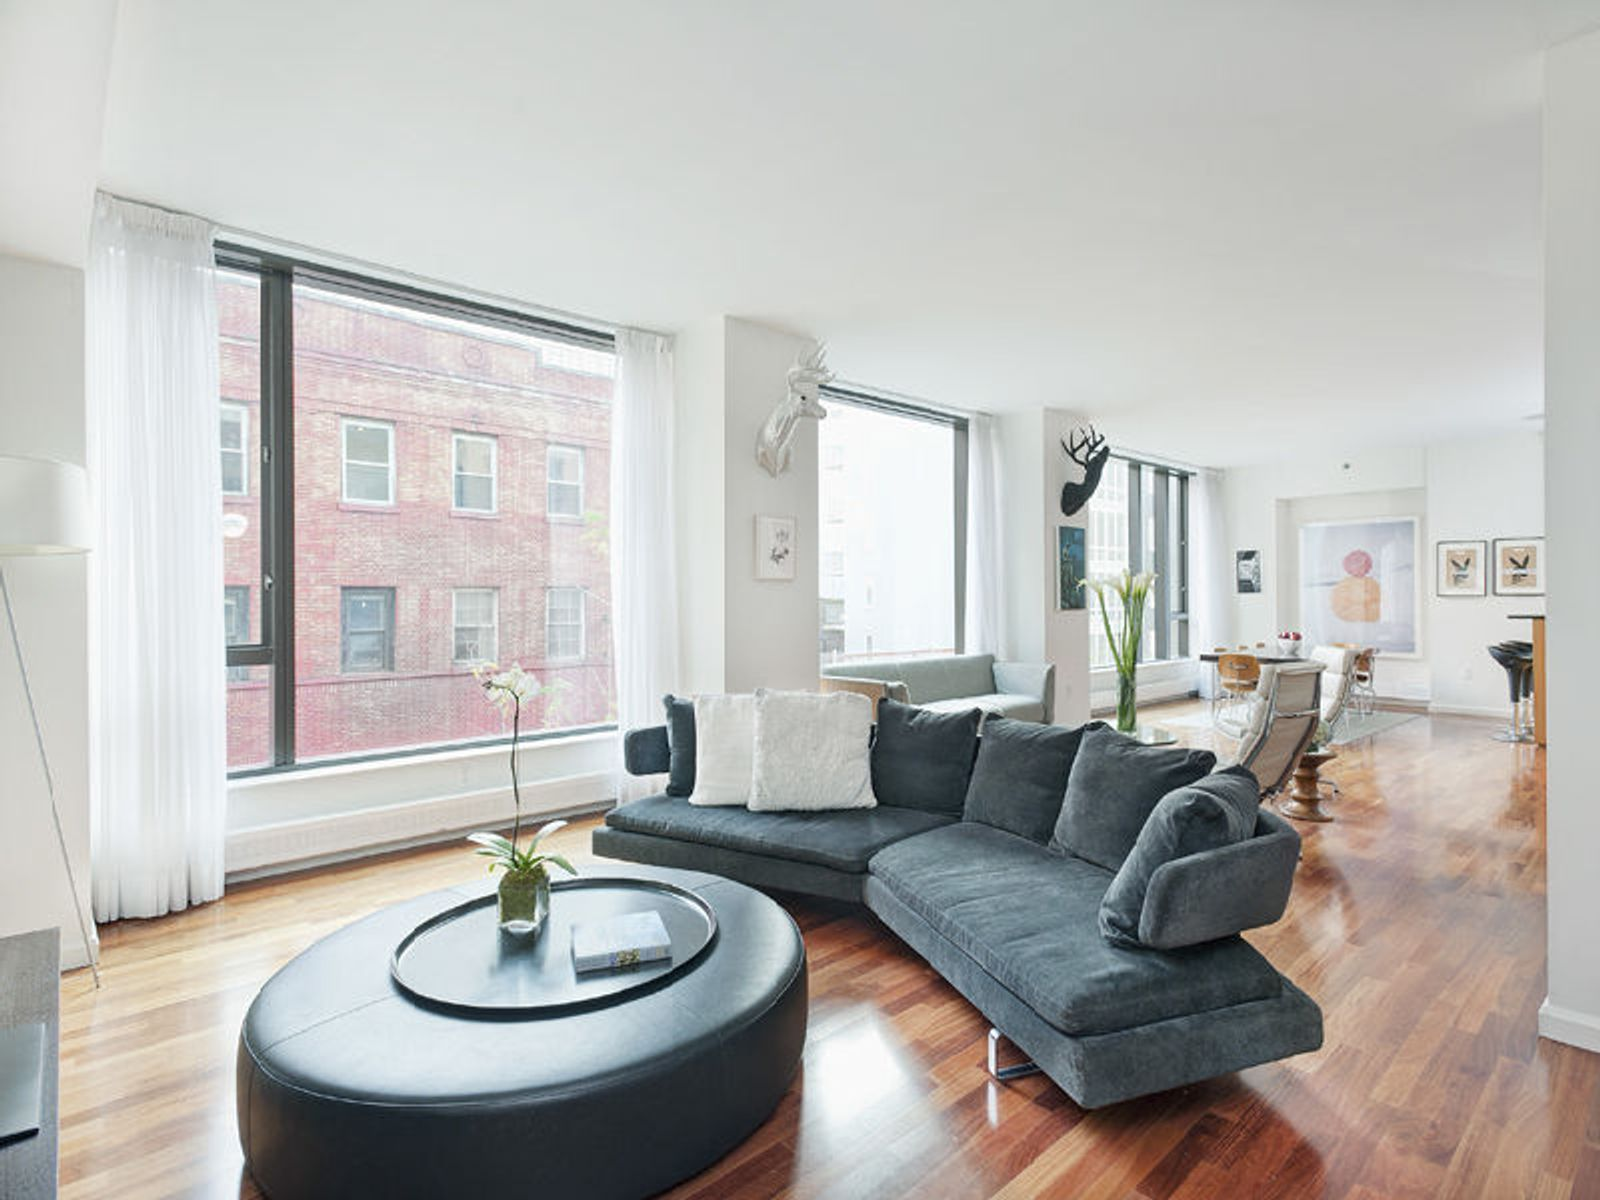 505 Greenwich Street, 3GH, New York NY Condominium - New York City Real Estate